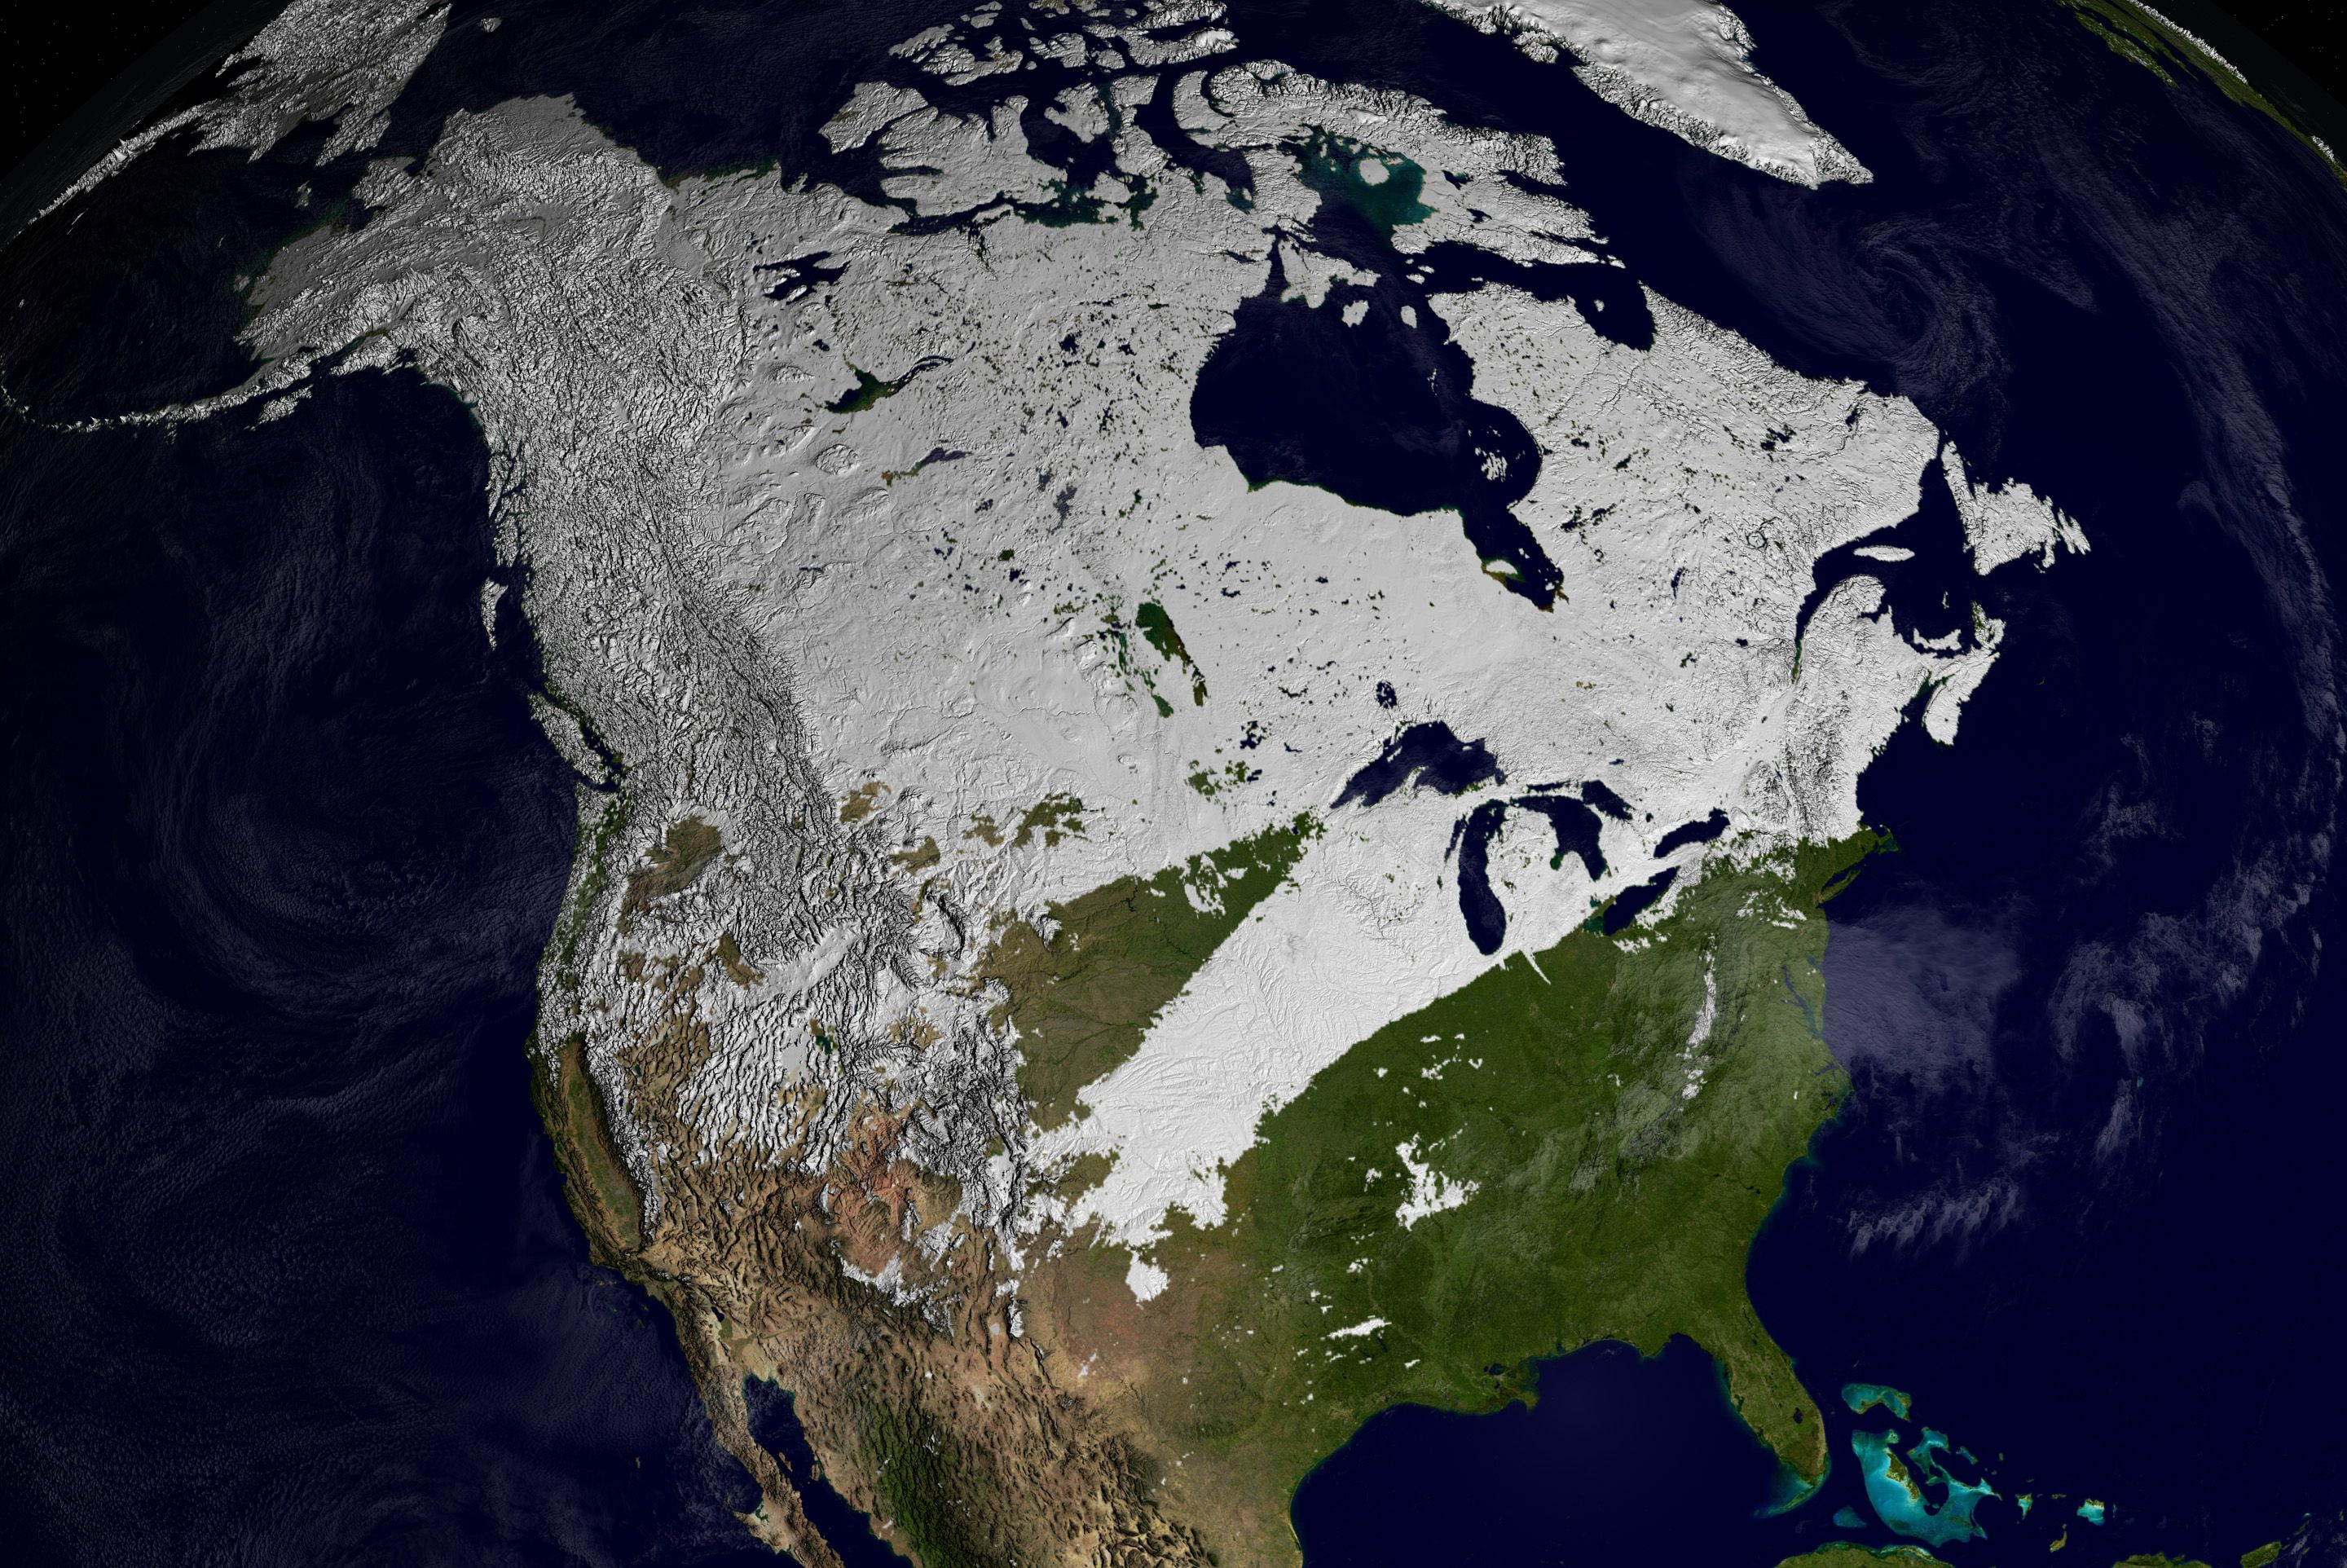 Why We Need More Snow Snow Depth Map Canada on canada water map, canada temperature map, canada snow coverage map, canada dew point map, canada rainfall map, canada climate map, canada density map, canada drought map, canada topographic map, canada weather map, canada relative humidity map, canada snow cover, canada surface map, noaa snow coverage map, canada seasonality map, snow weather map, canada satellite map, canada snow roads, canada relief map, canada snow fall map,